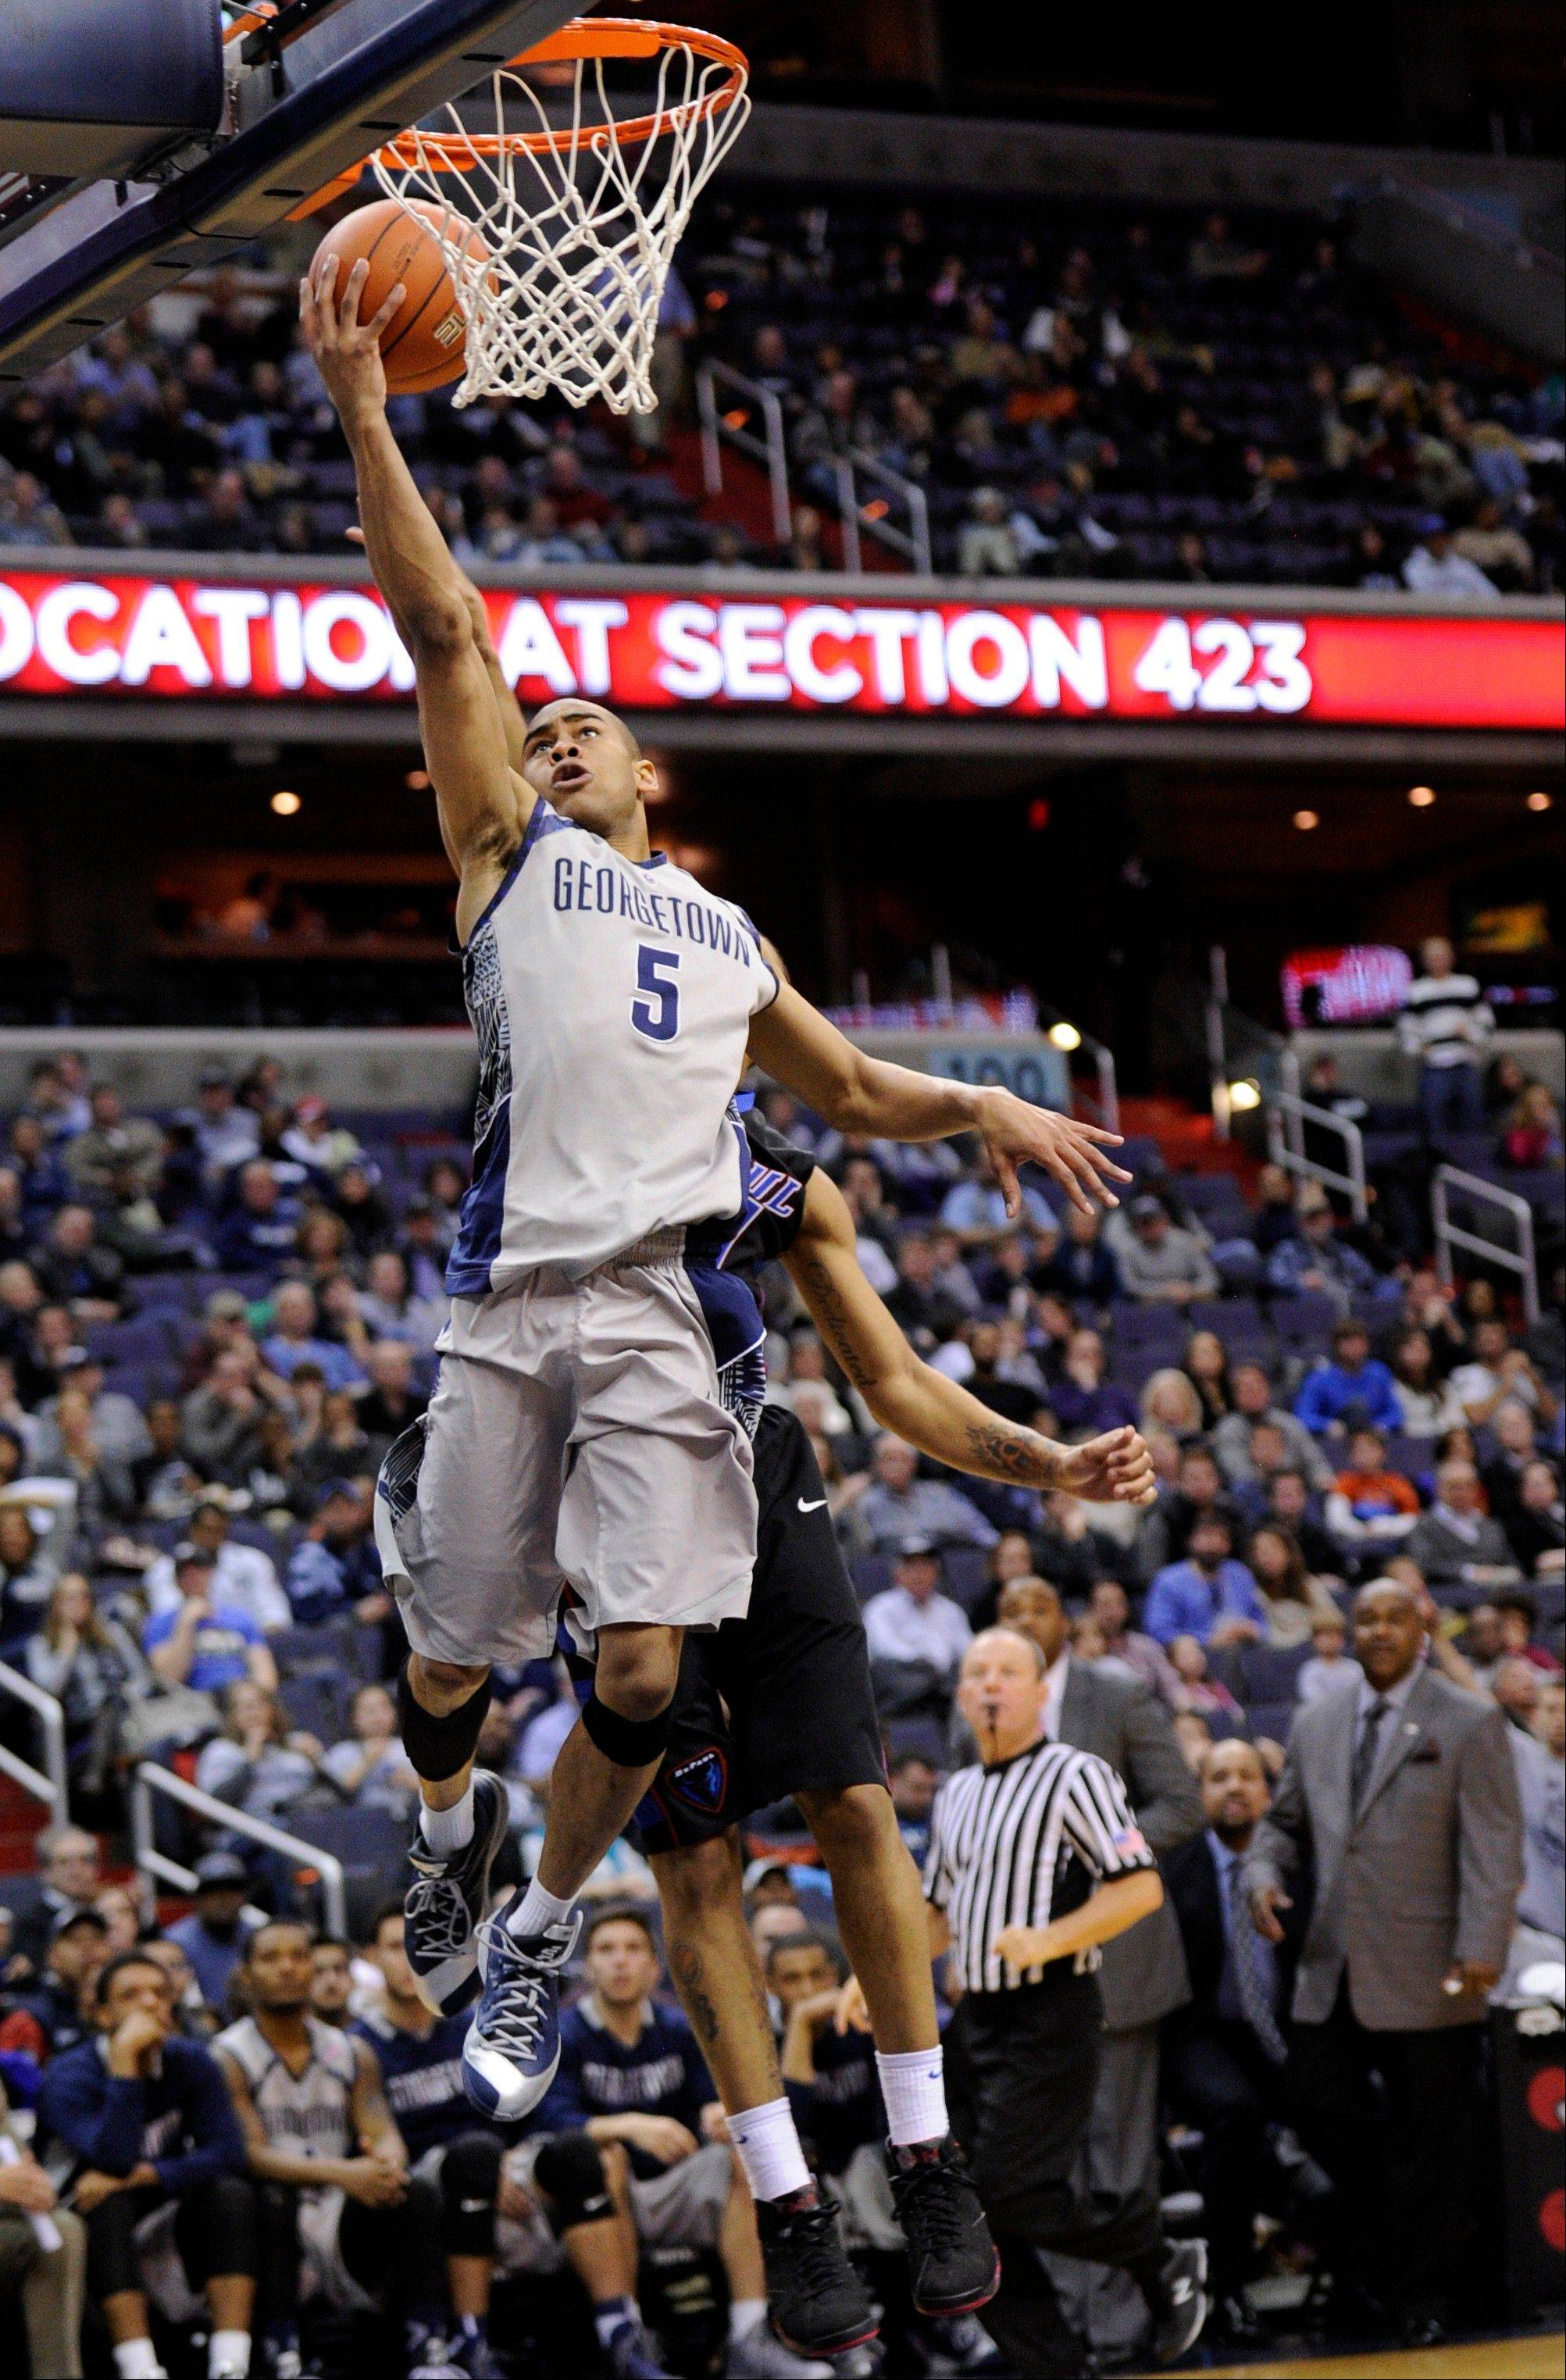 Georgetown guard Markel Starks (5) goes to the basket against DePaul guard Brandon Young, back, during the second half of an NCAA college basketball game, Tuesday, Dec. 31, 2013, in Washington. Georgetown won 61-54. (AP Photo/Nick Wass)